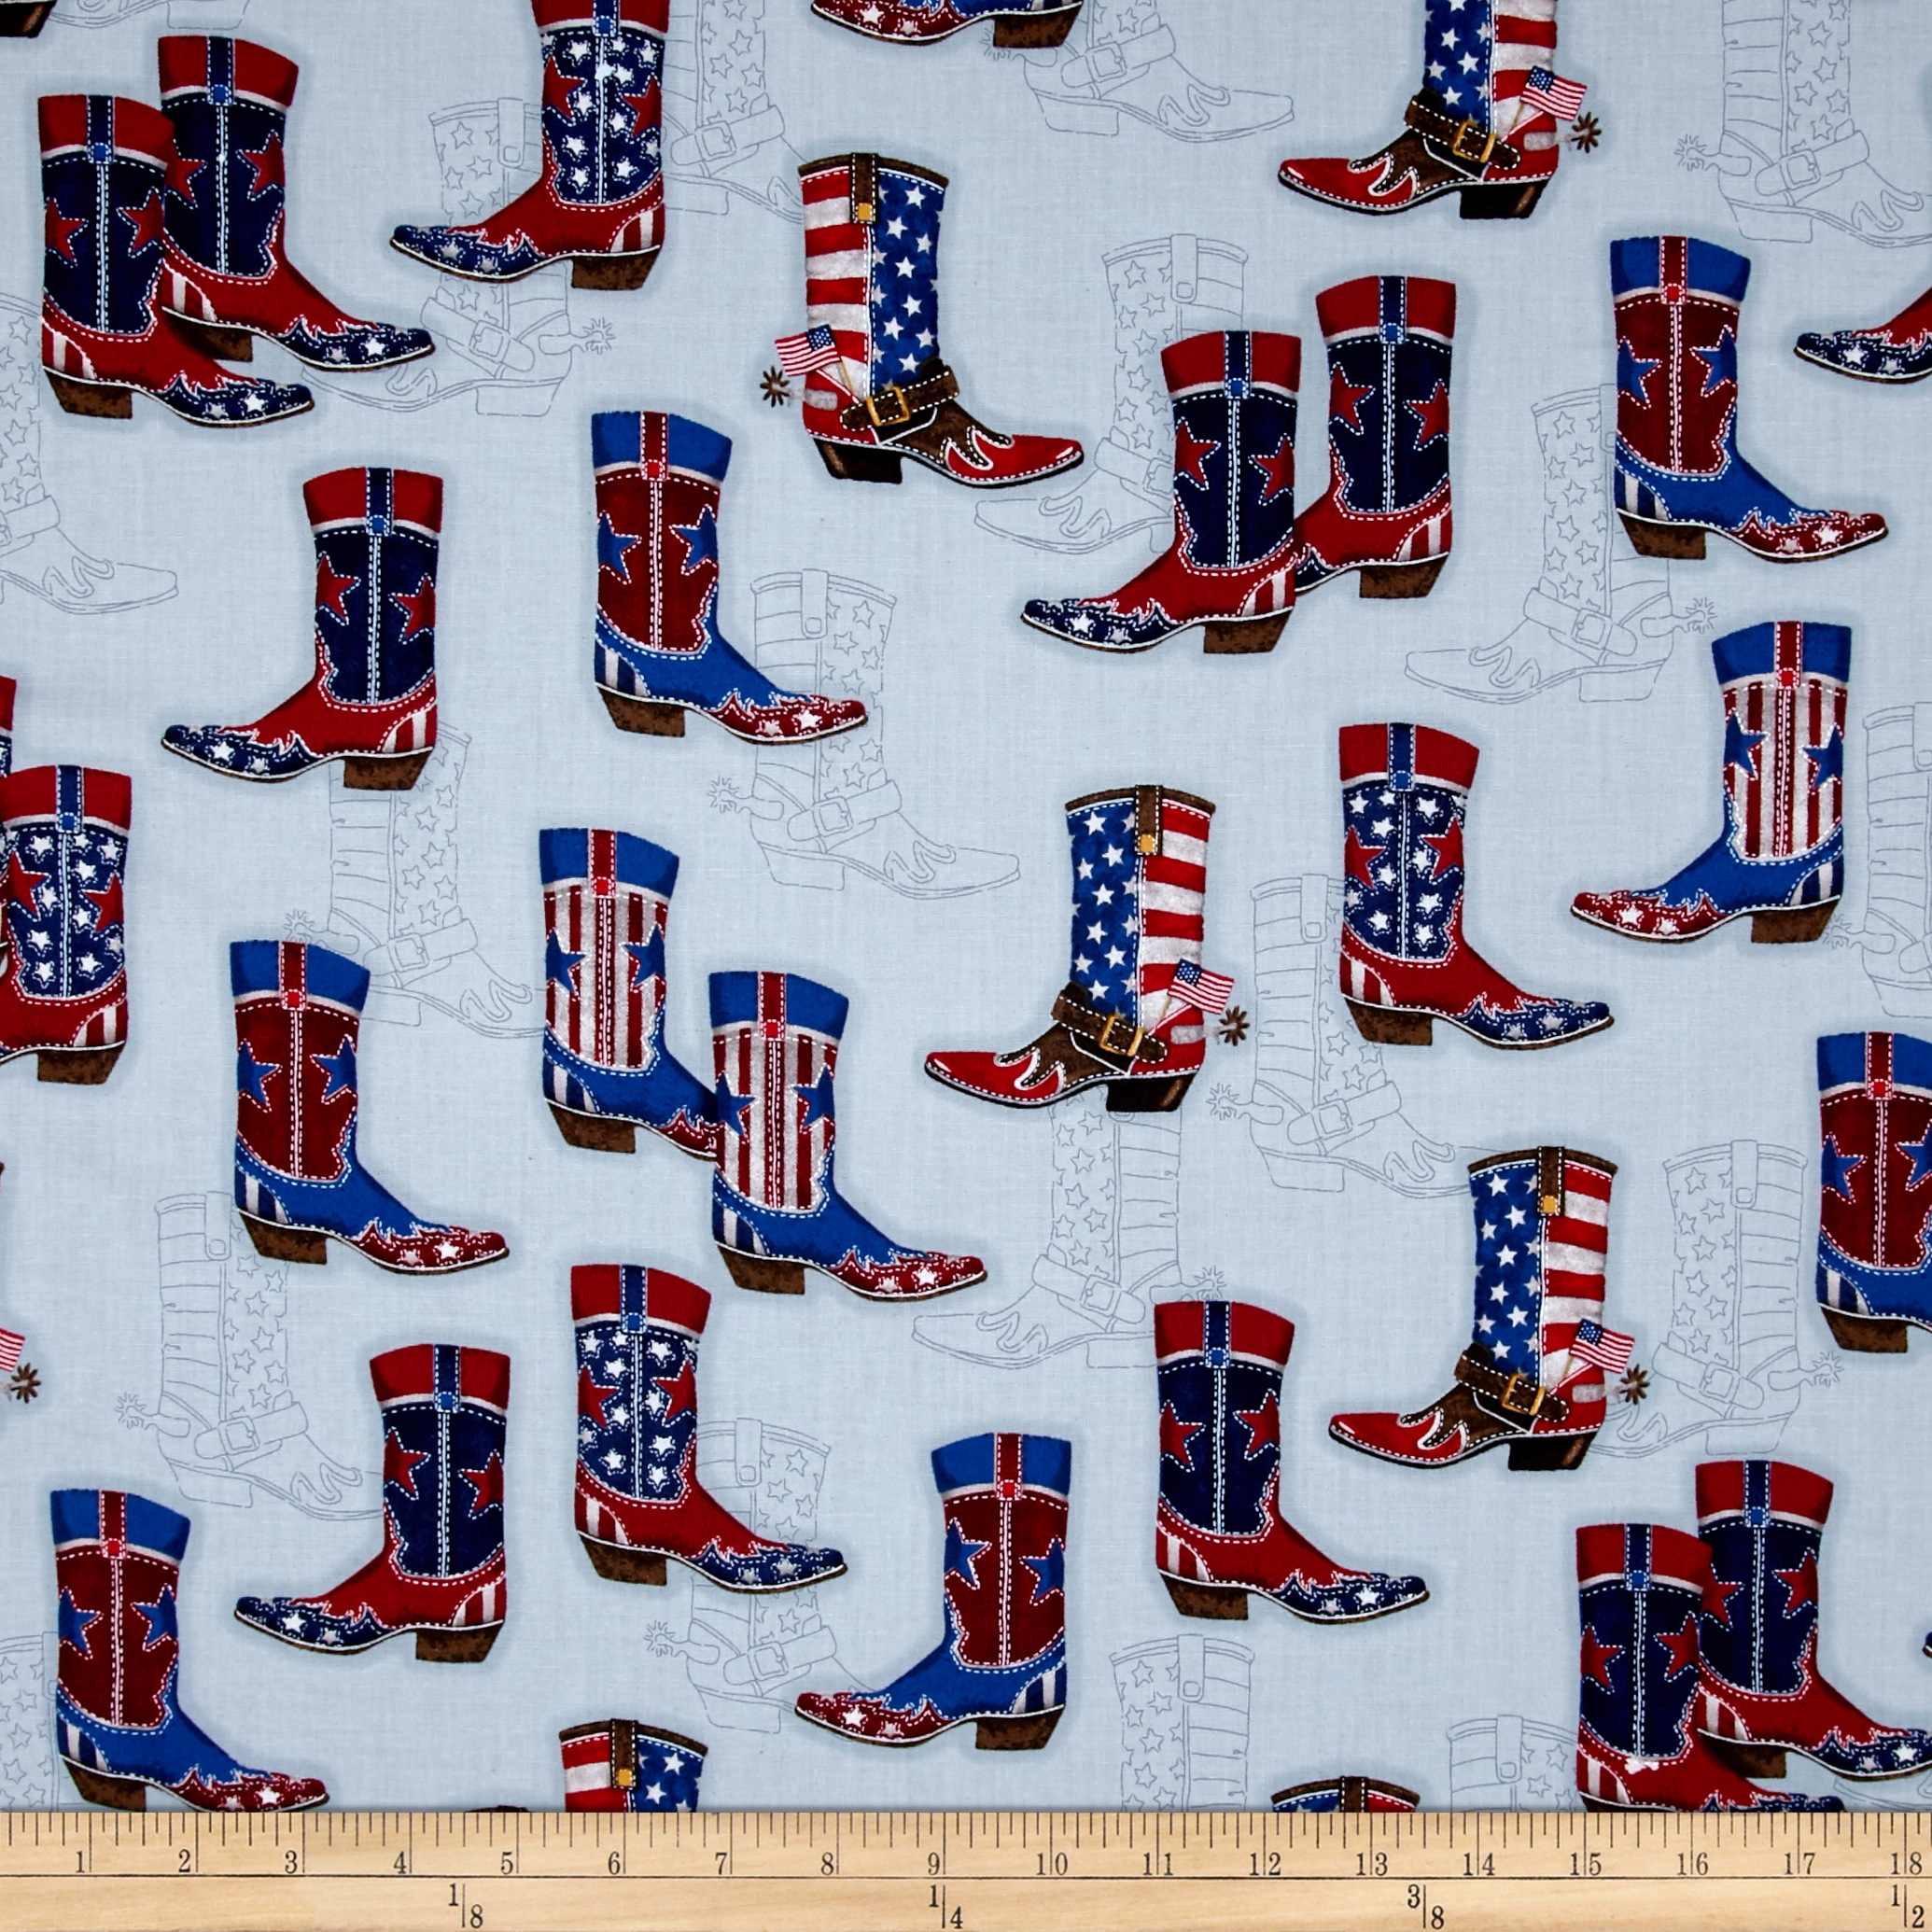 Kaufman Red White and Blue Boots Denim Fabric by Kaufman in USA